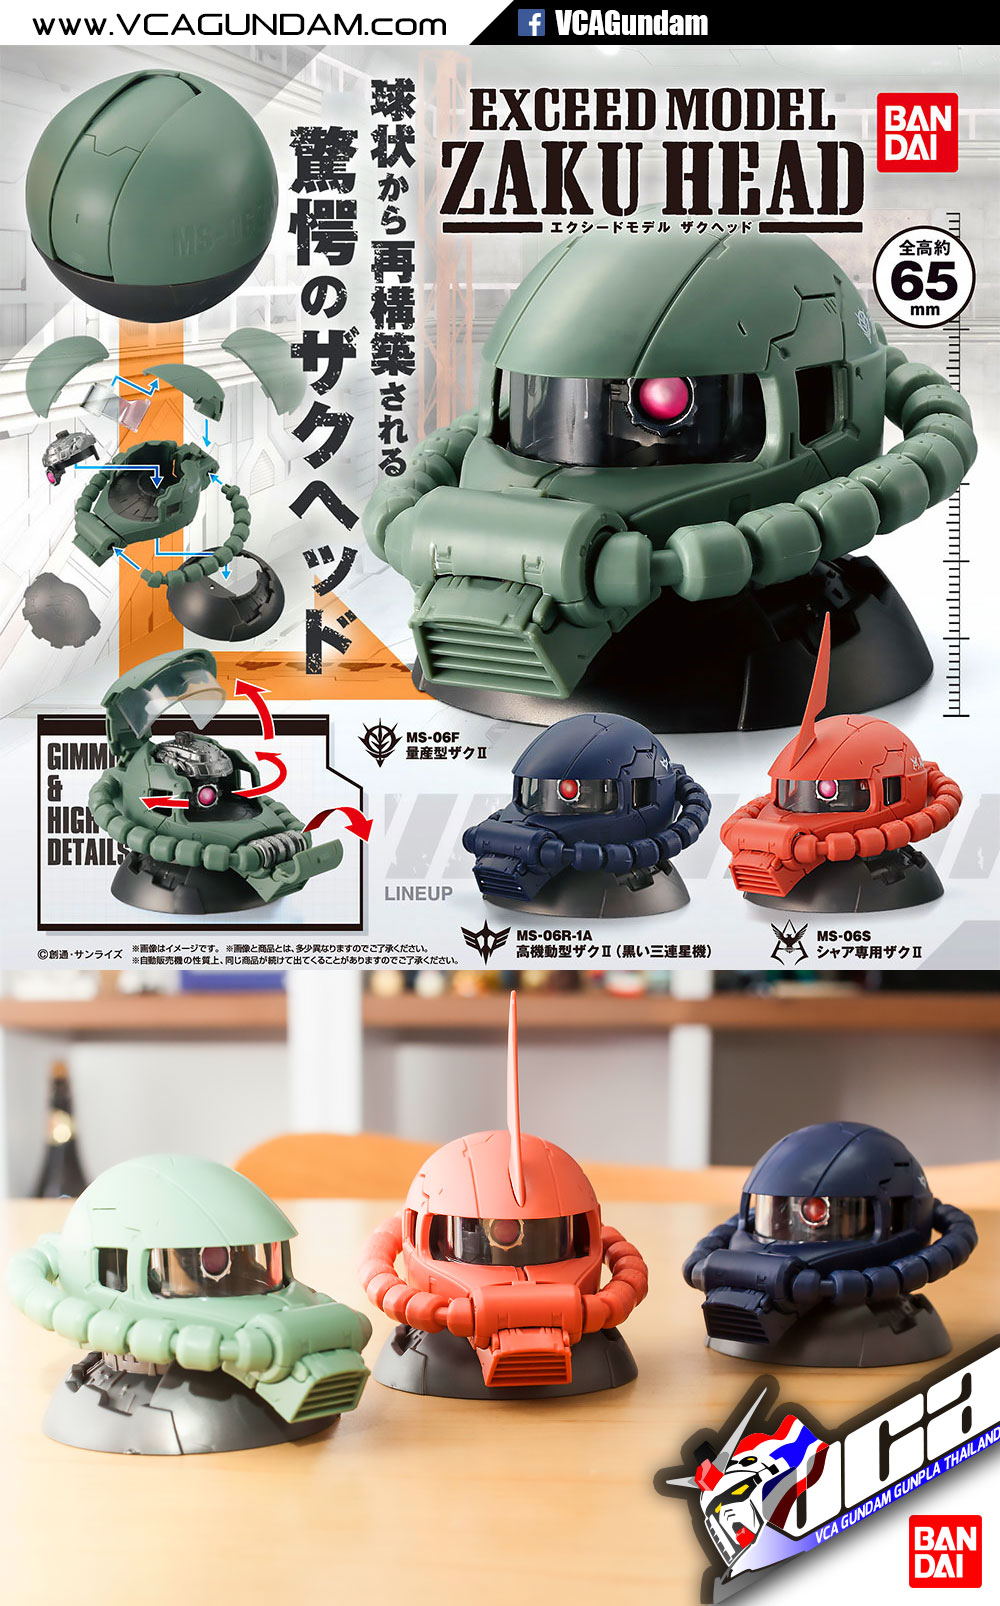 EXCEED MODEL MS-06F ZAKU II HEAD ซาคุ 2